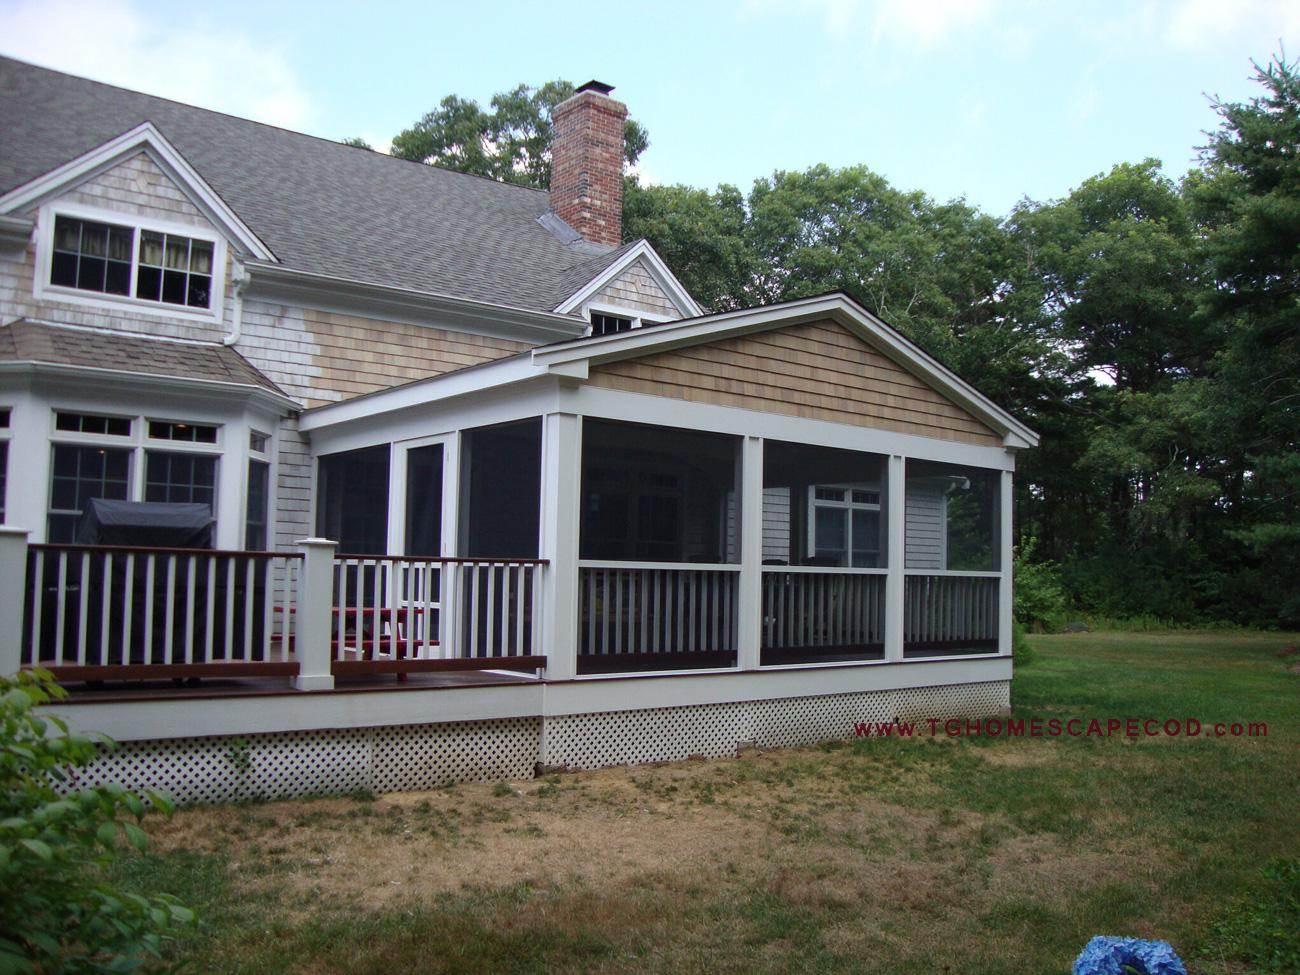 Cape cod additions cape cod home design build services for Cape cod home additions